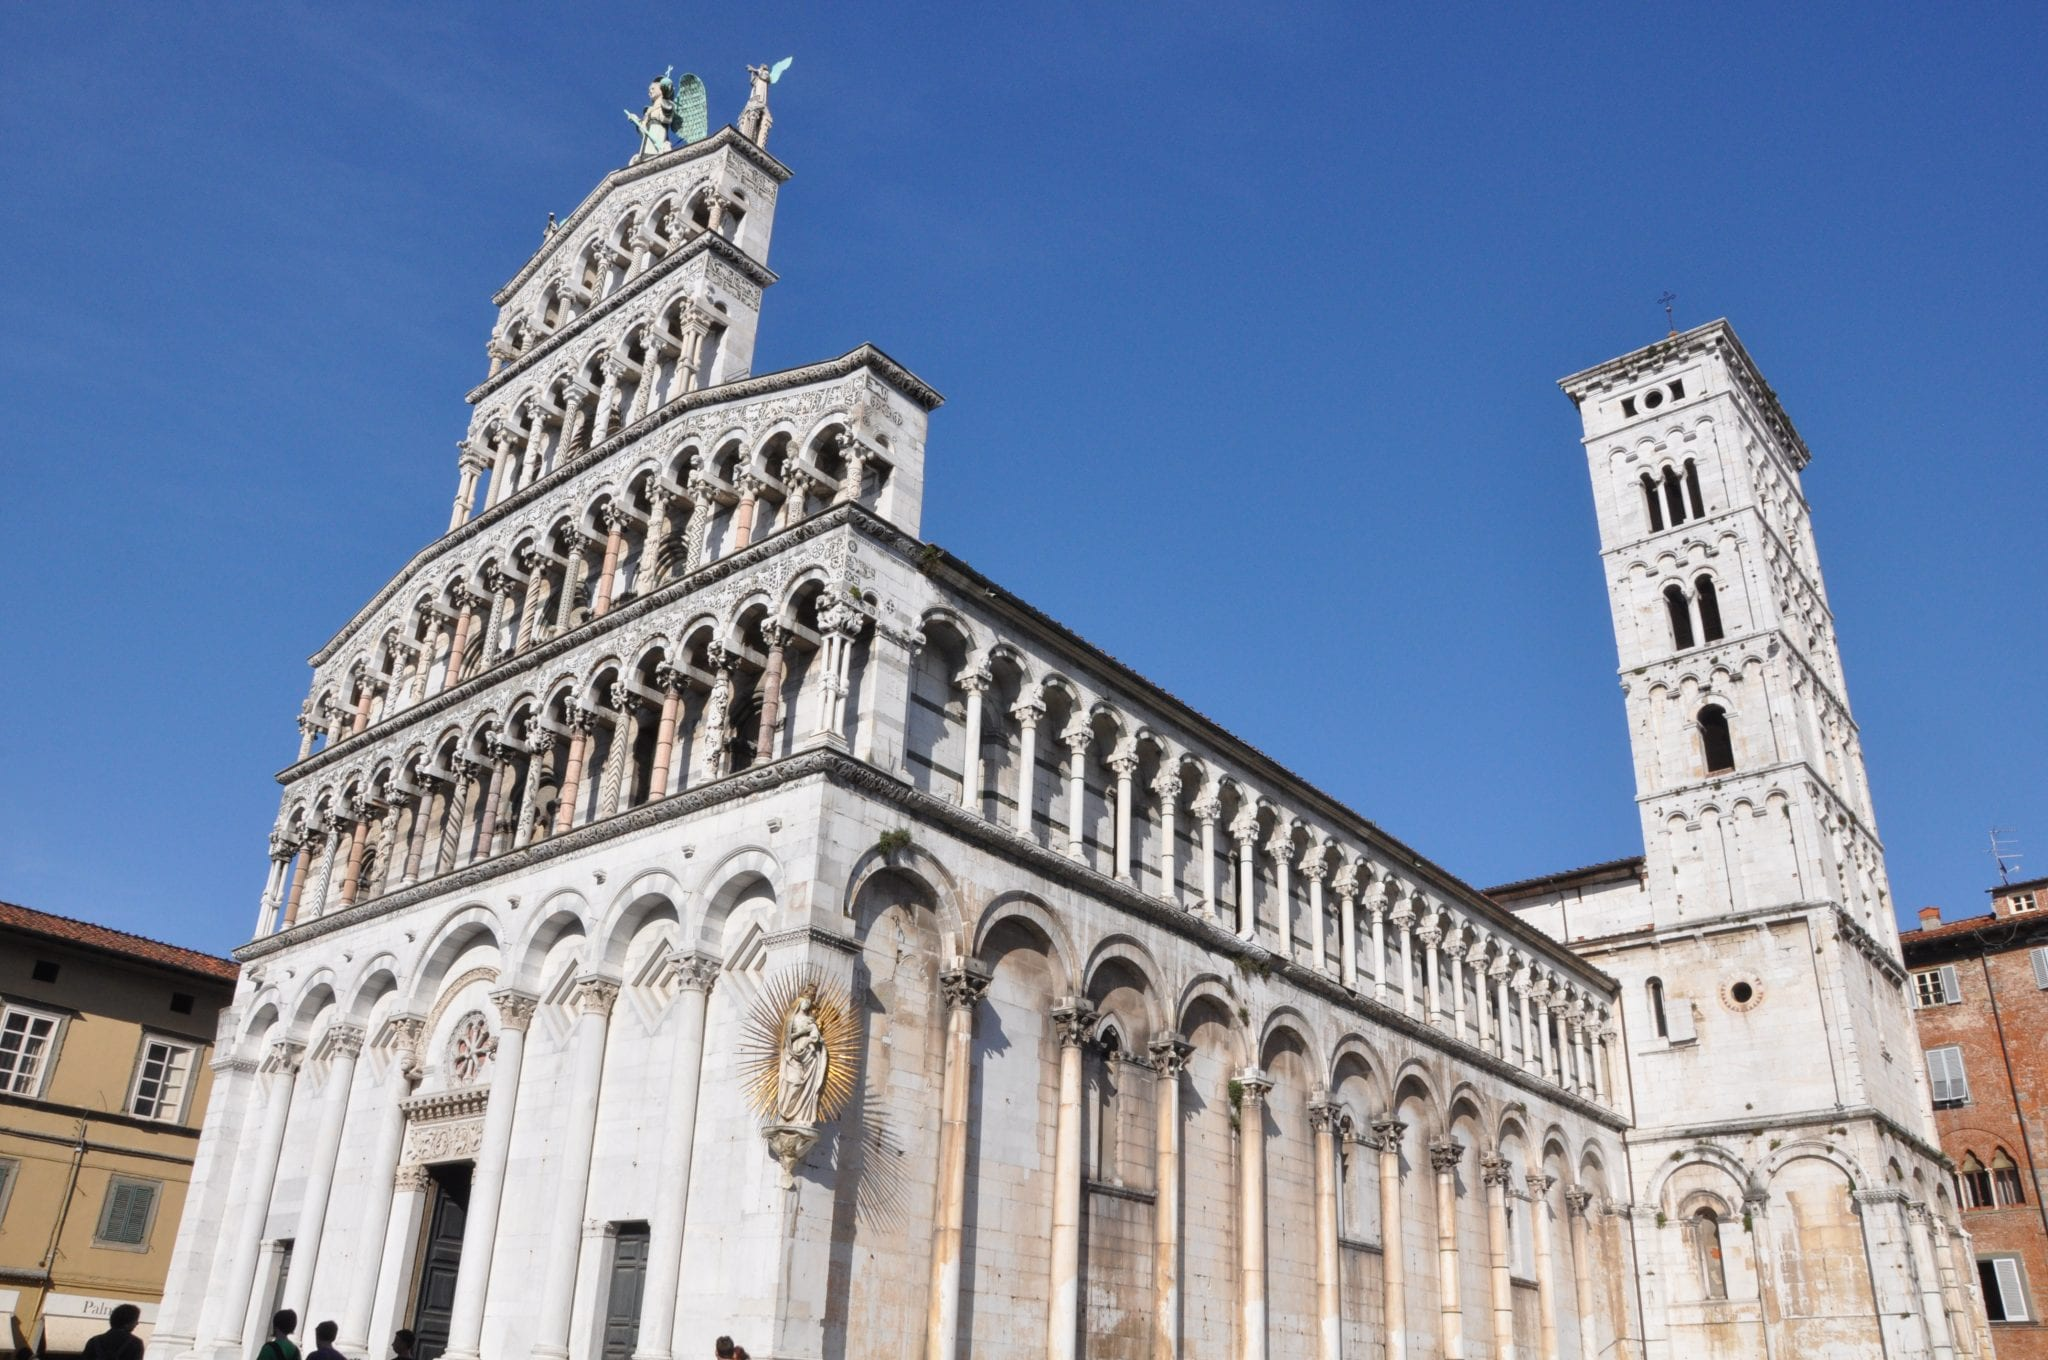 Tuscan architecture of Lucca's churches